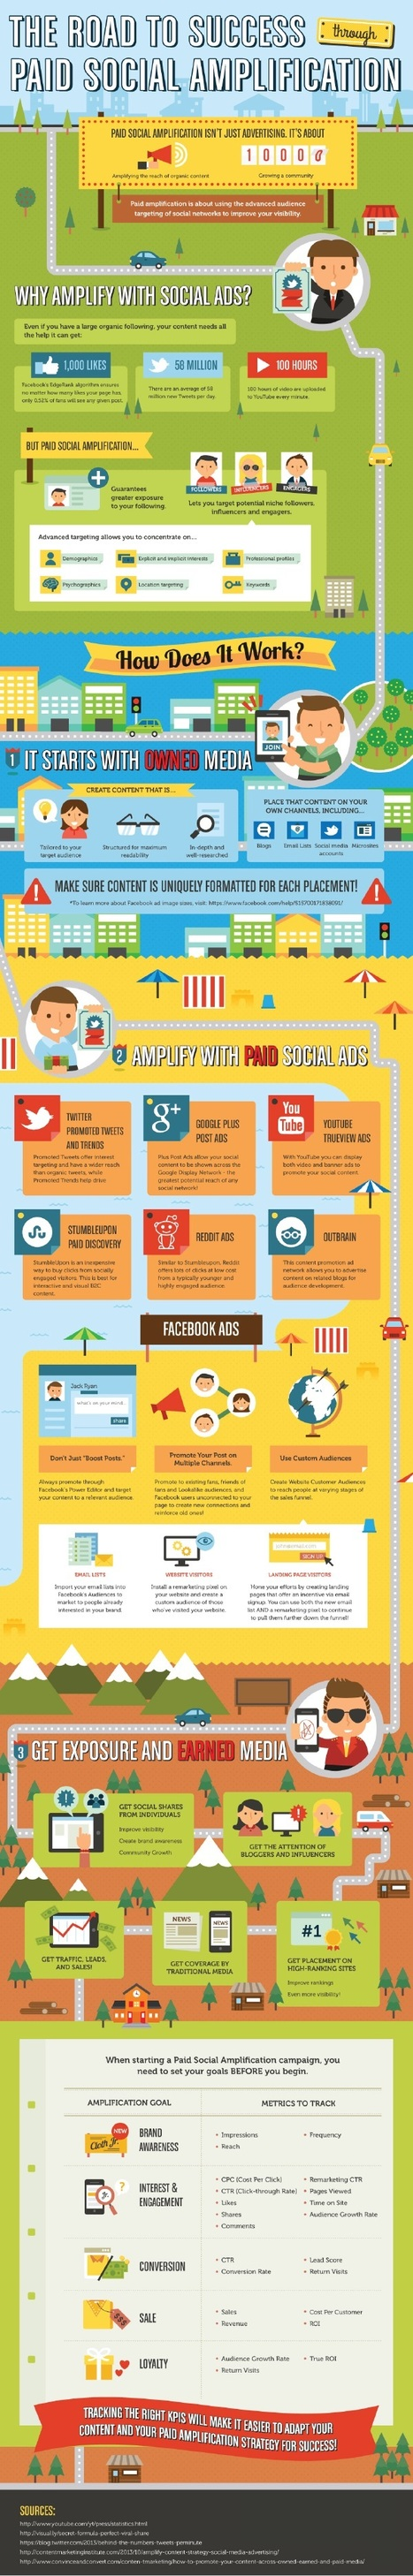 Should You Pay for Social Media? #Infographic | MarketingHits | Scoop.it